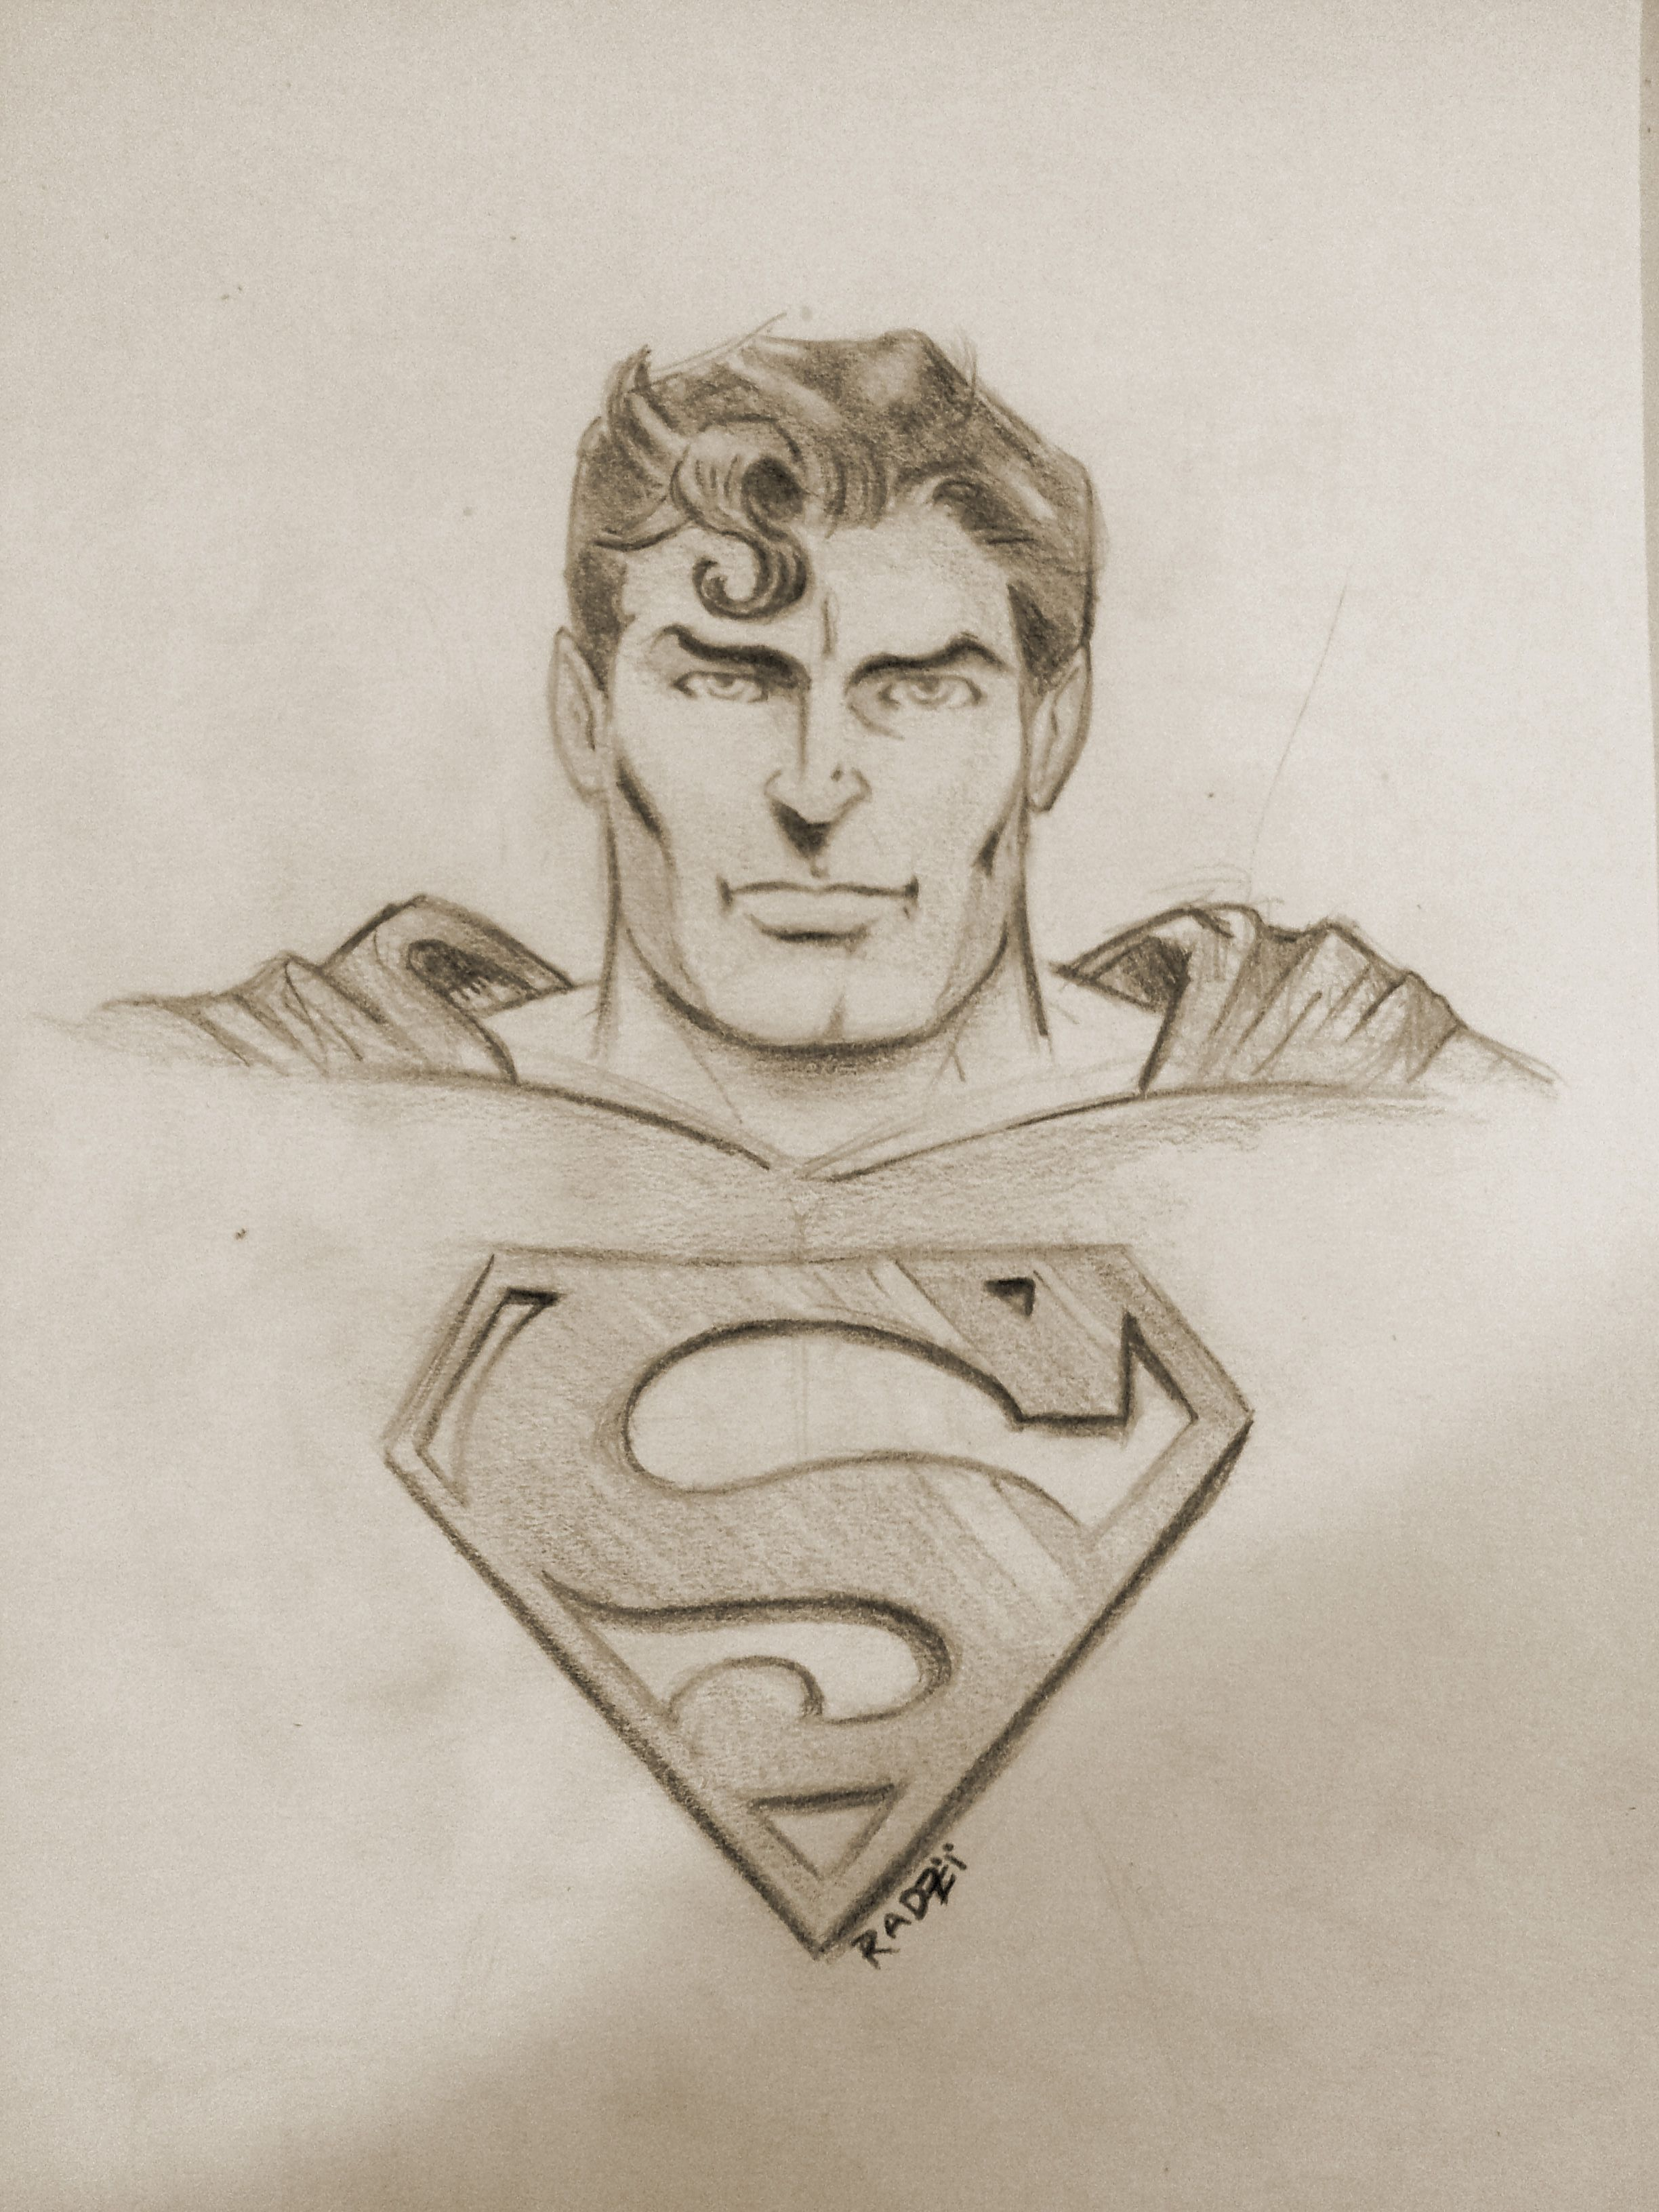 Superman dc comics dc illustration sketch pencil